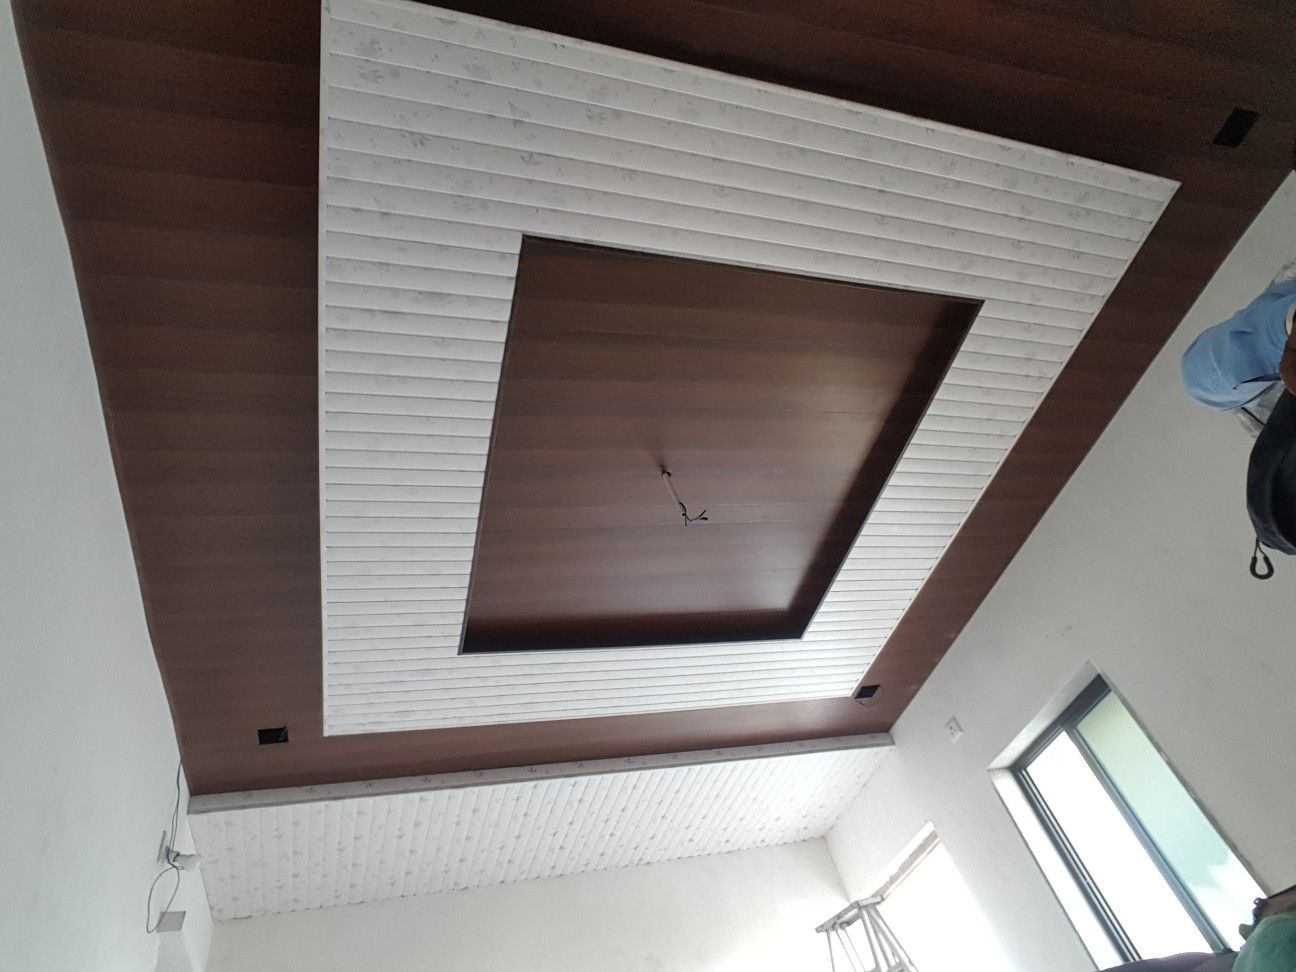 Pin by Mahinder on MAHINDER 1112 | Celling design, Ceiling ...